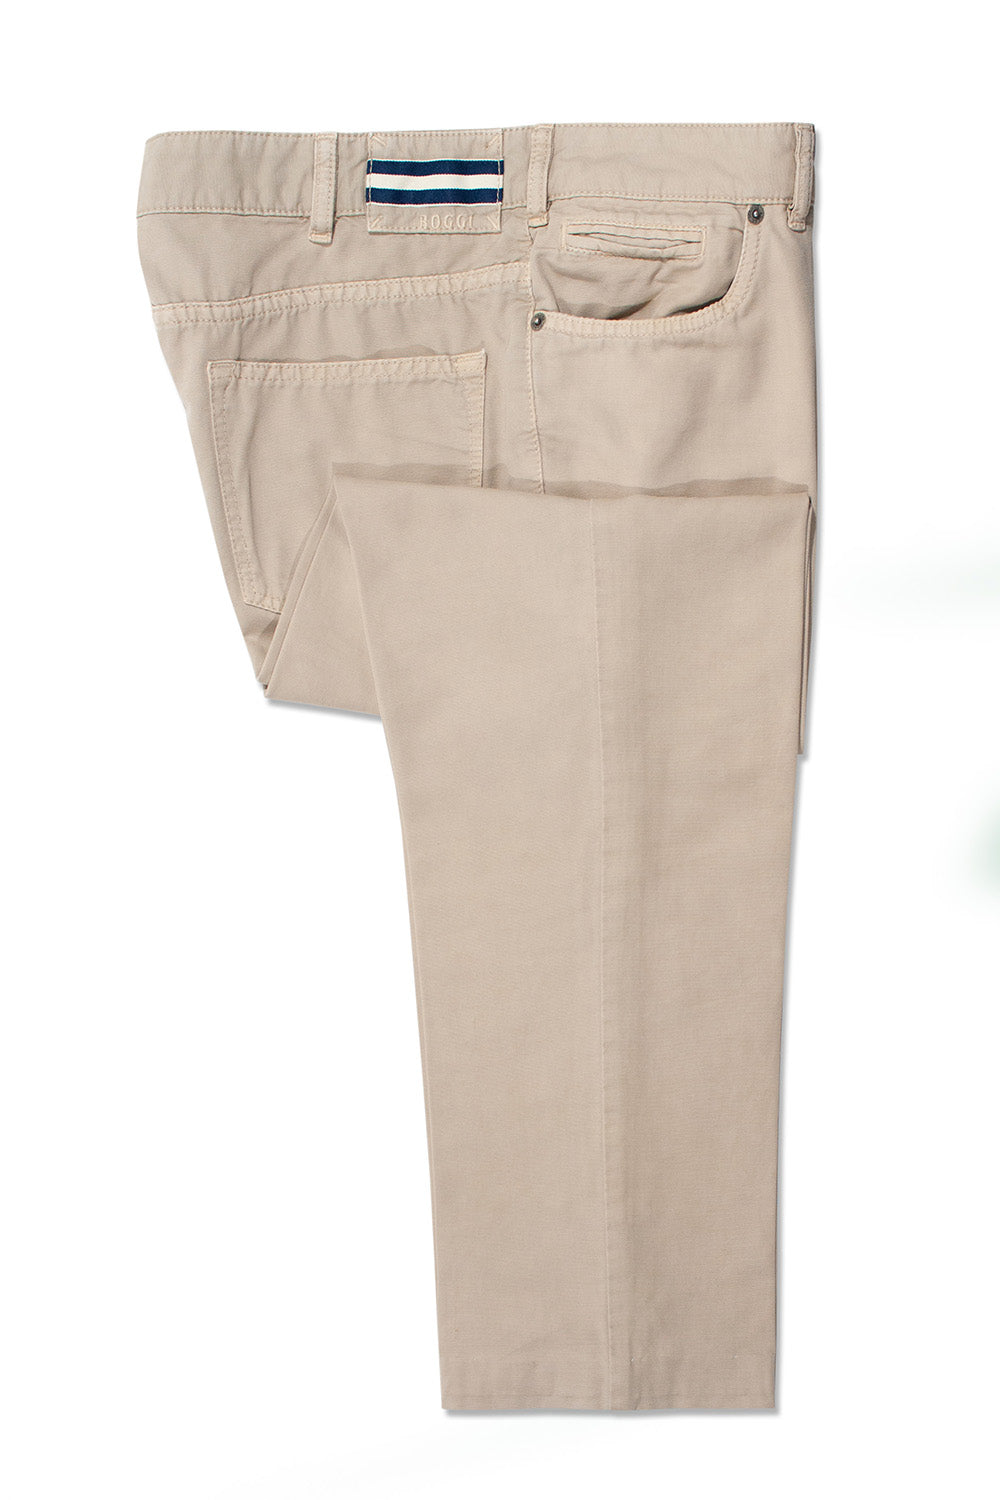 Boggi Milano Beige Garment Washed Cotton Pants